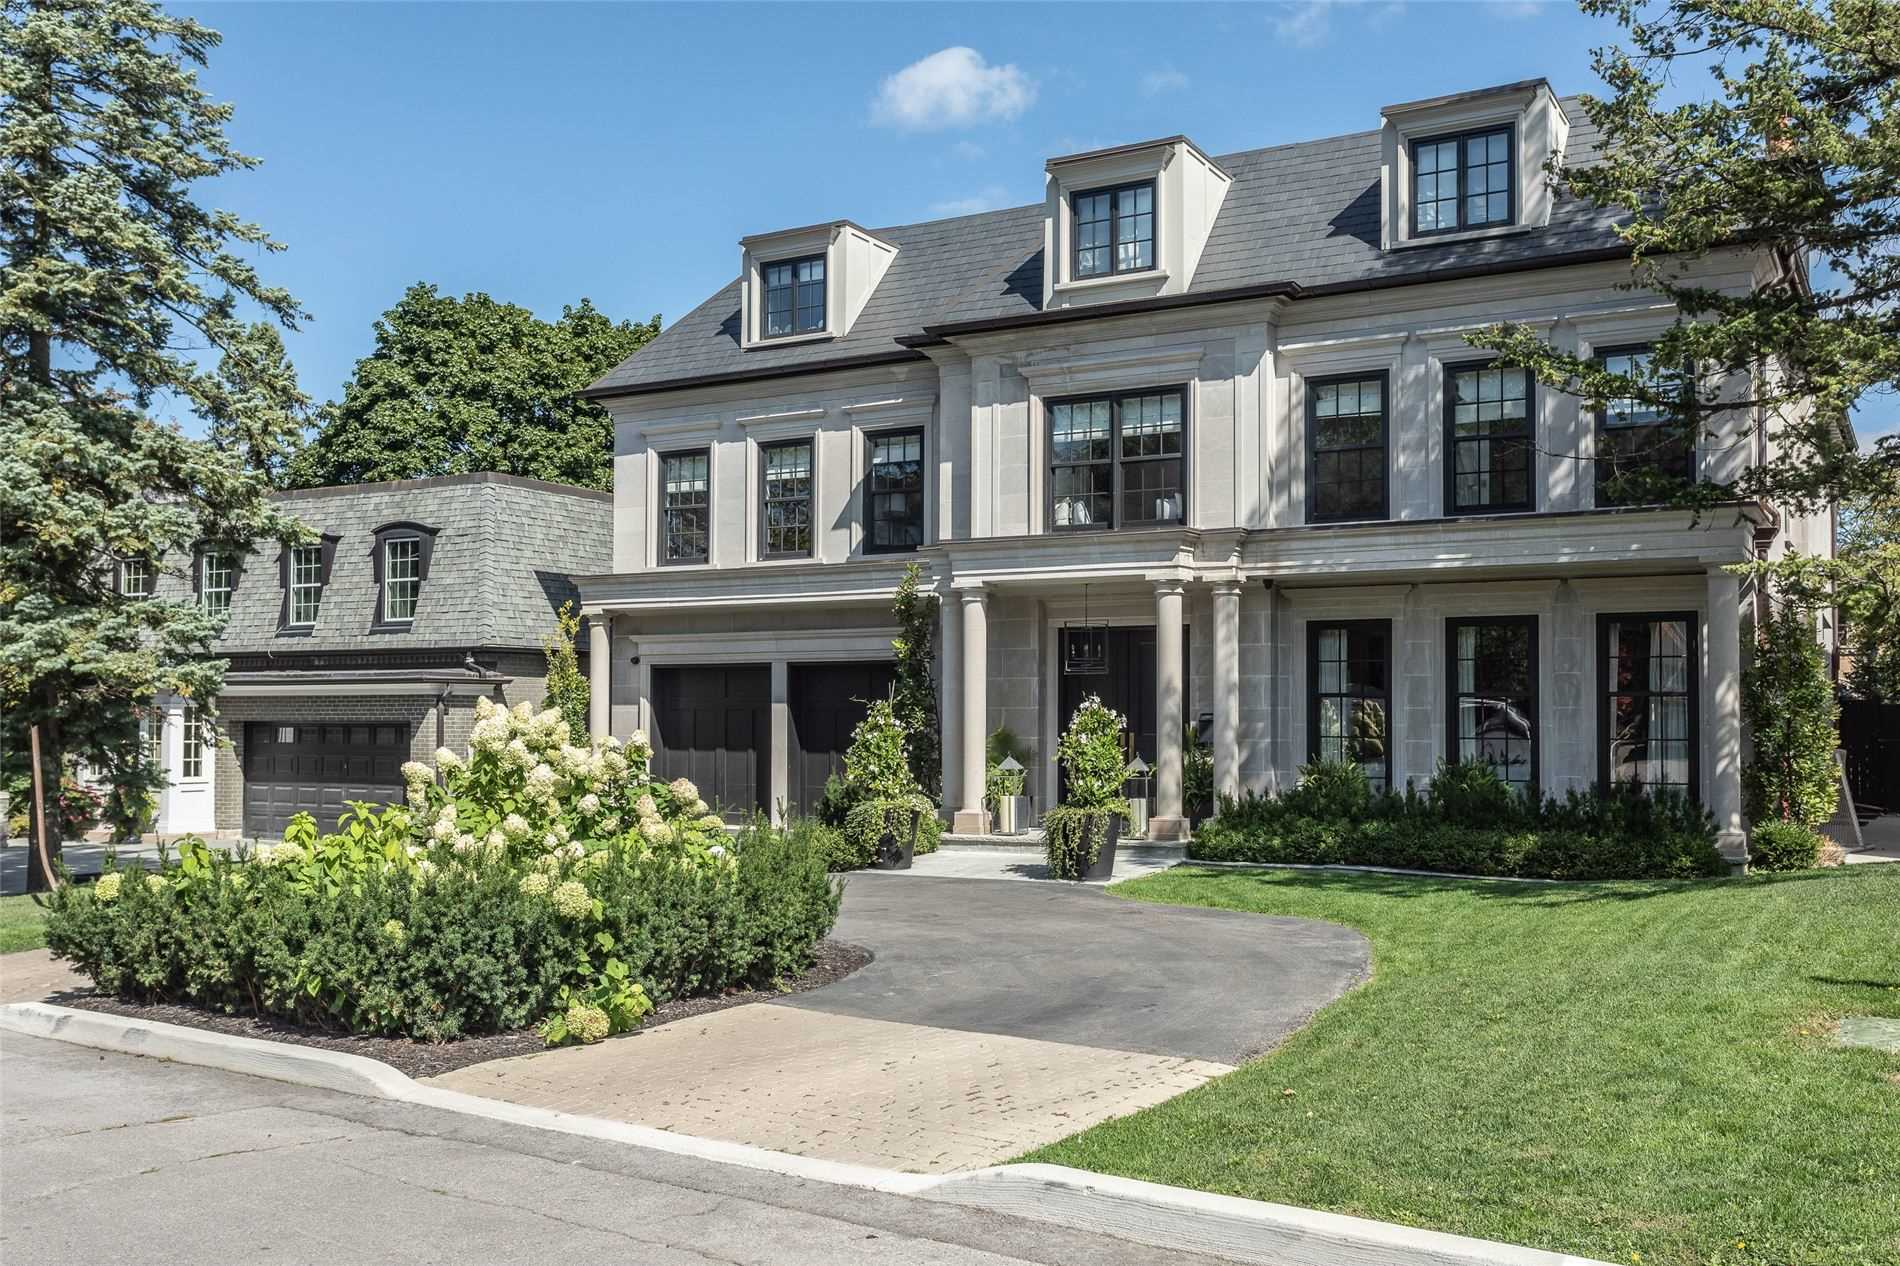 47 Daneswood Rd, Bridle Path-Sunnybrook-York Mills, Toronto, Ontario M4N3J7, 5 Bedrooms Bedrooms, 26 Rooms Rooms,11 BathroomsBathrooms,Detached,For Sale,Daneswood,C4940428